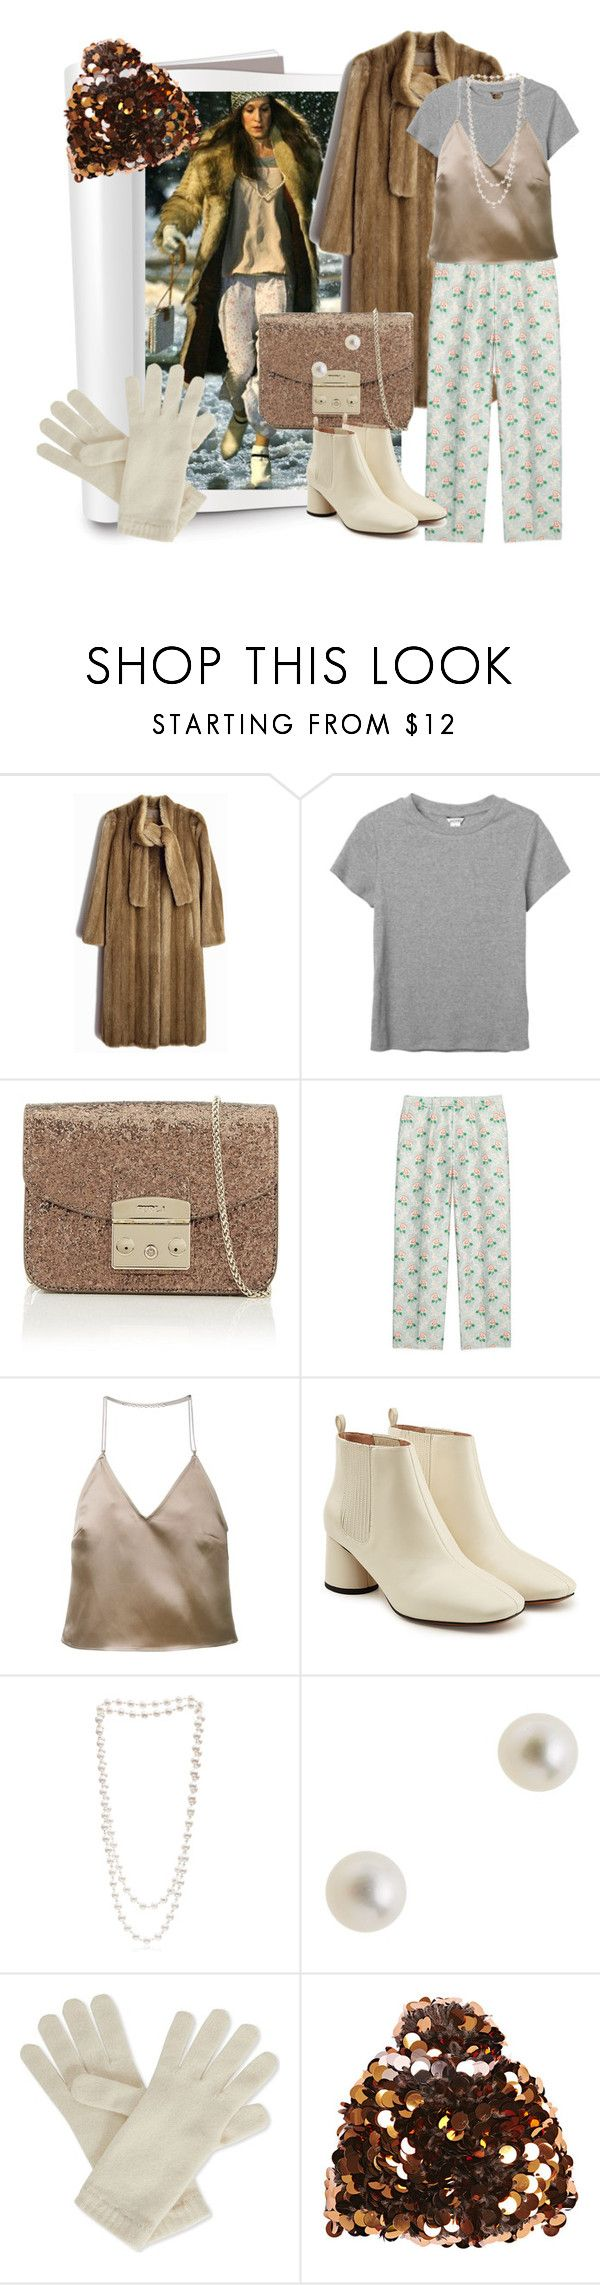 """""""Carrie's style #6"""" by mariloli1303 ❤ liked on Polyvore featuring Monki, Furla, Gucci, Barbara Casasola, Marc Jacobs, The Pearl Quarter, J.Crew, Johnstons and Grevi"""